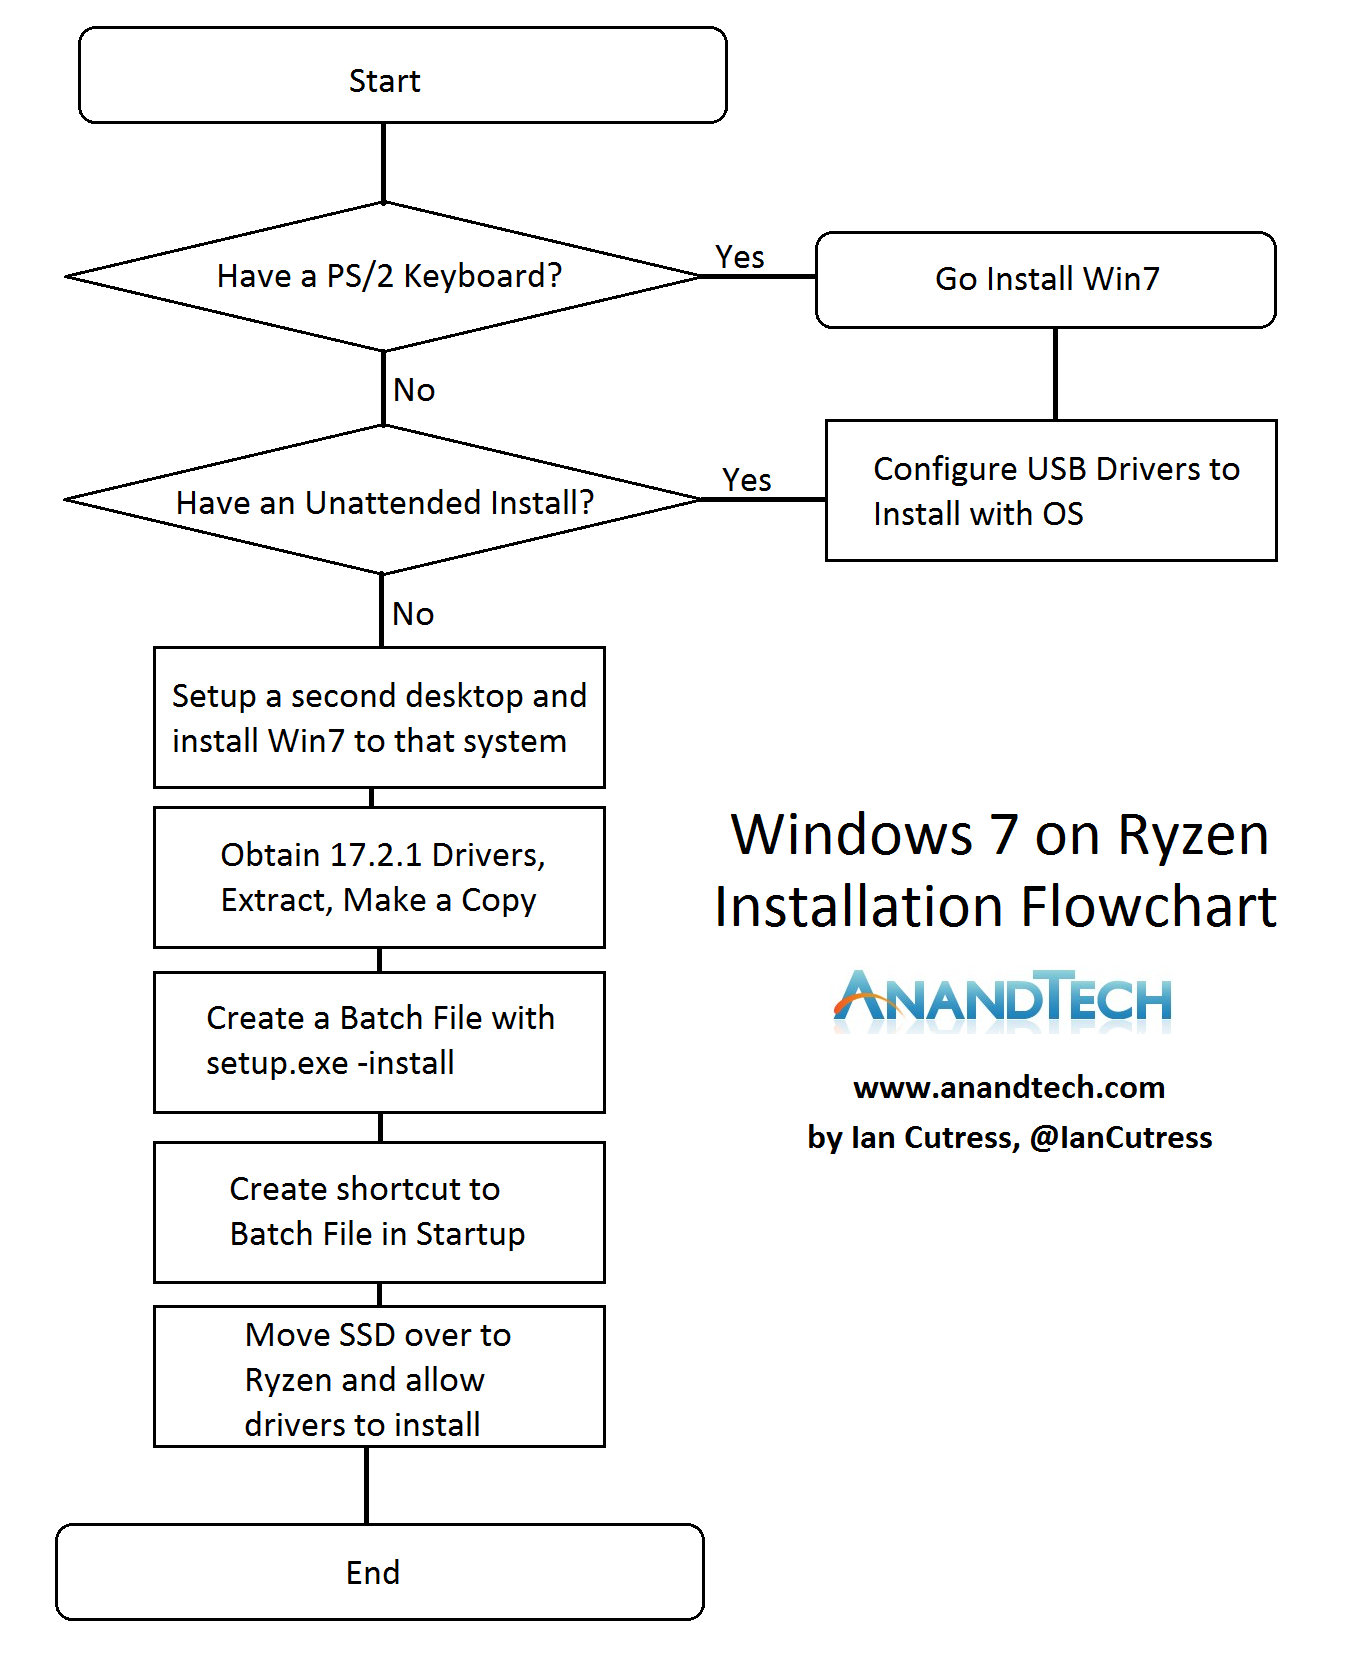 How To Get Ryzen Working On Windows 7 X64 Usb Ps2 Keyboard Wiring Diagram For Some Of Our Power User Readers That Know Extract Files And Create Shortcuts This Flow Chart Might Be Easier Follow